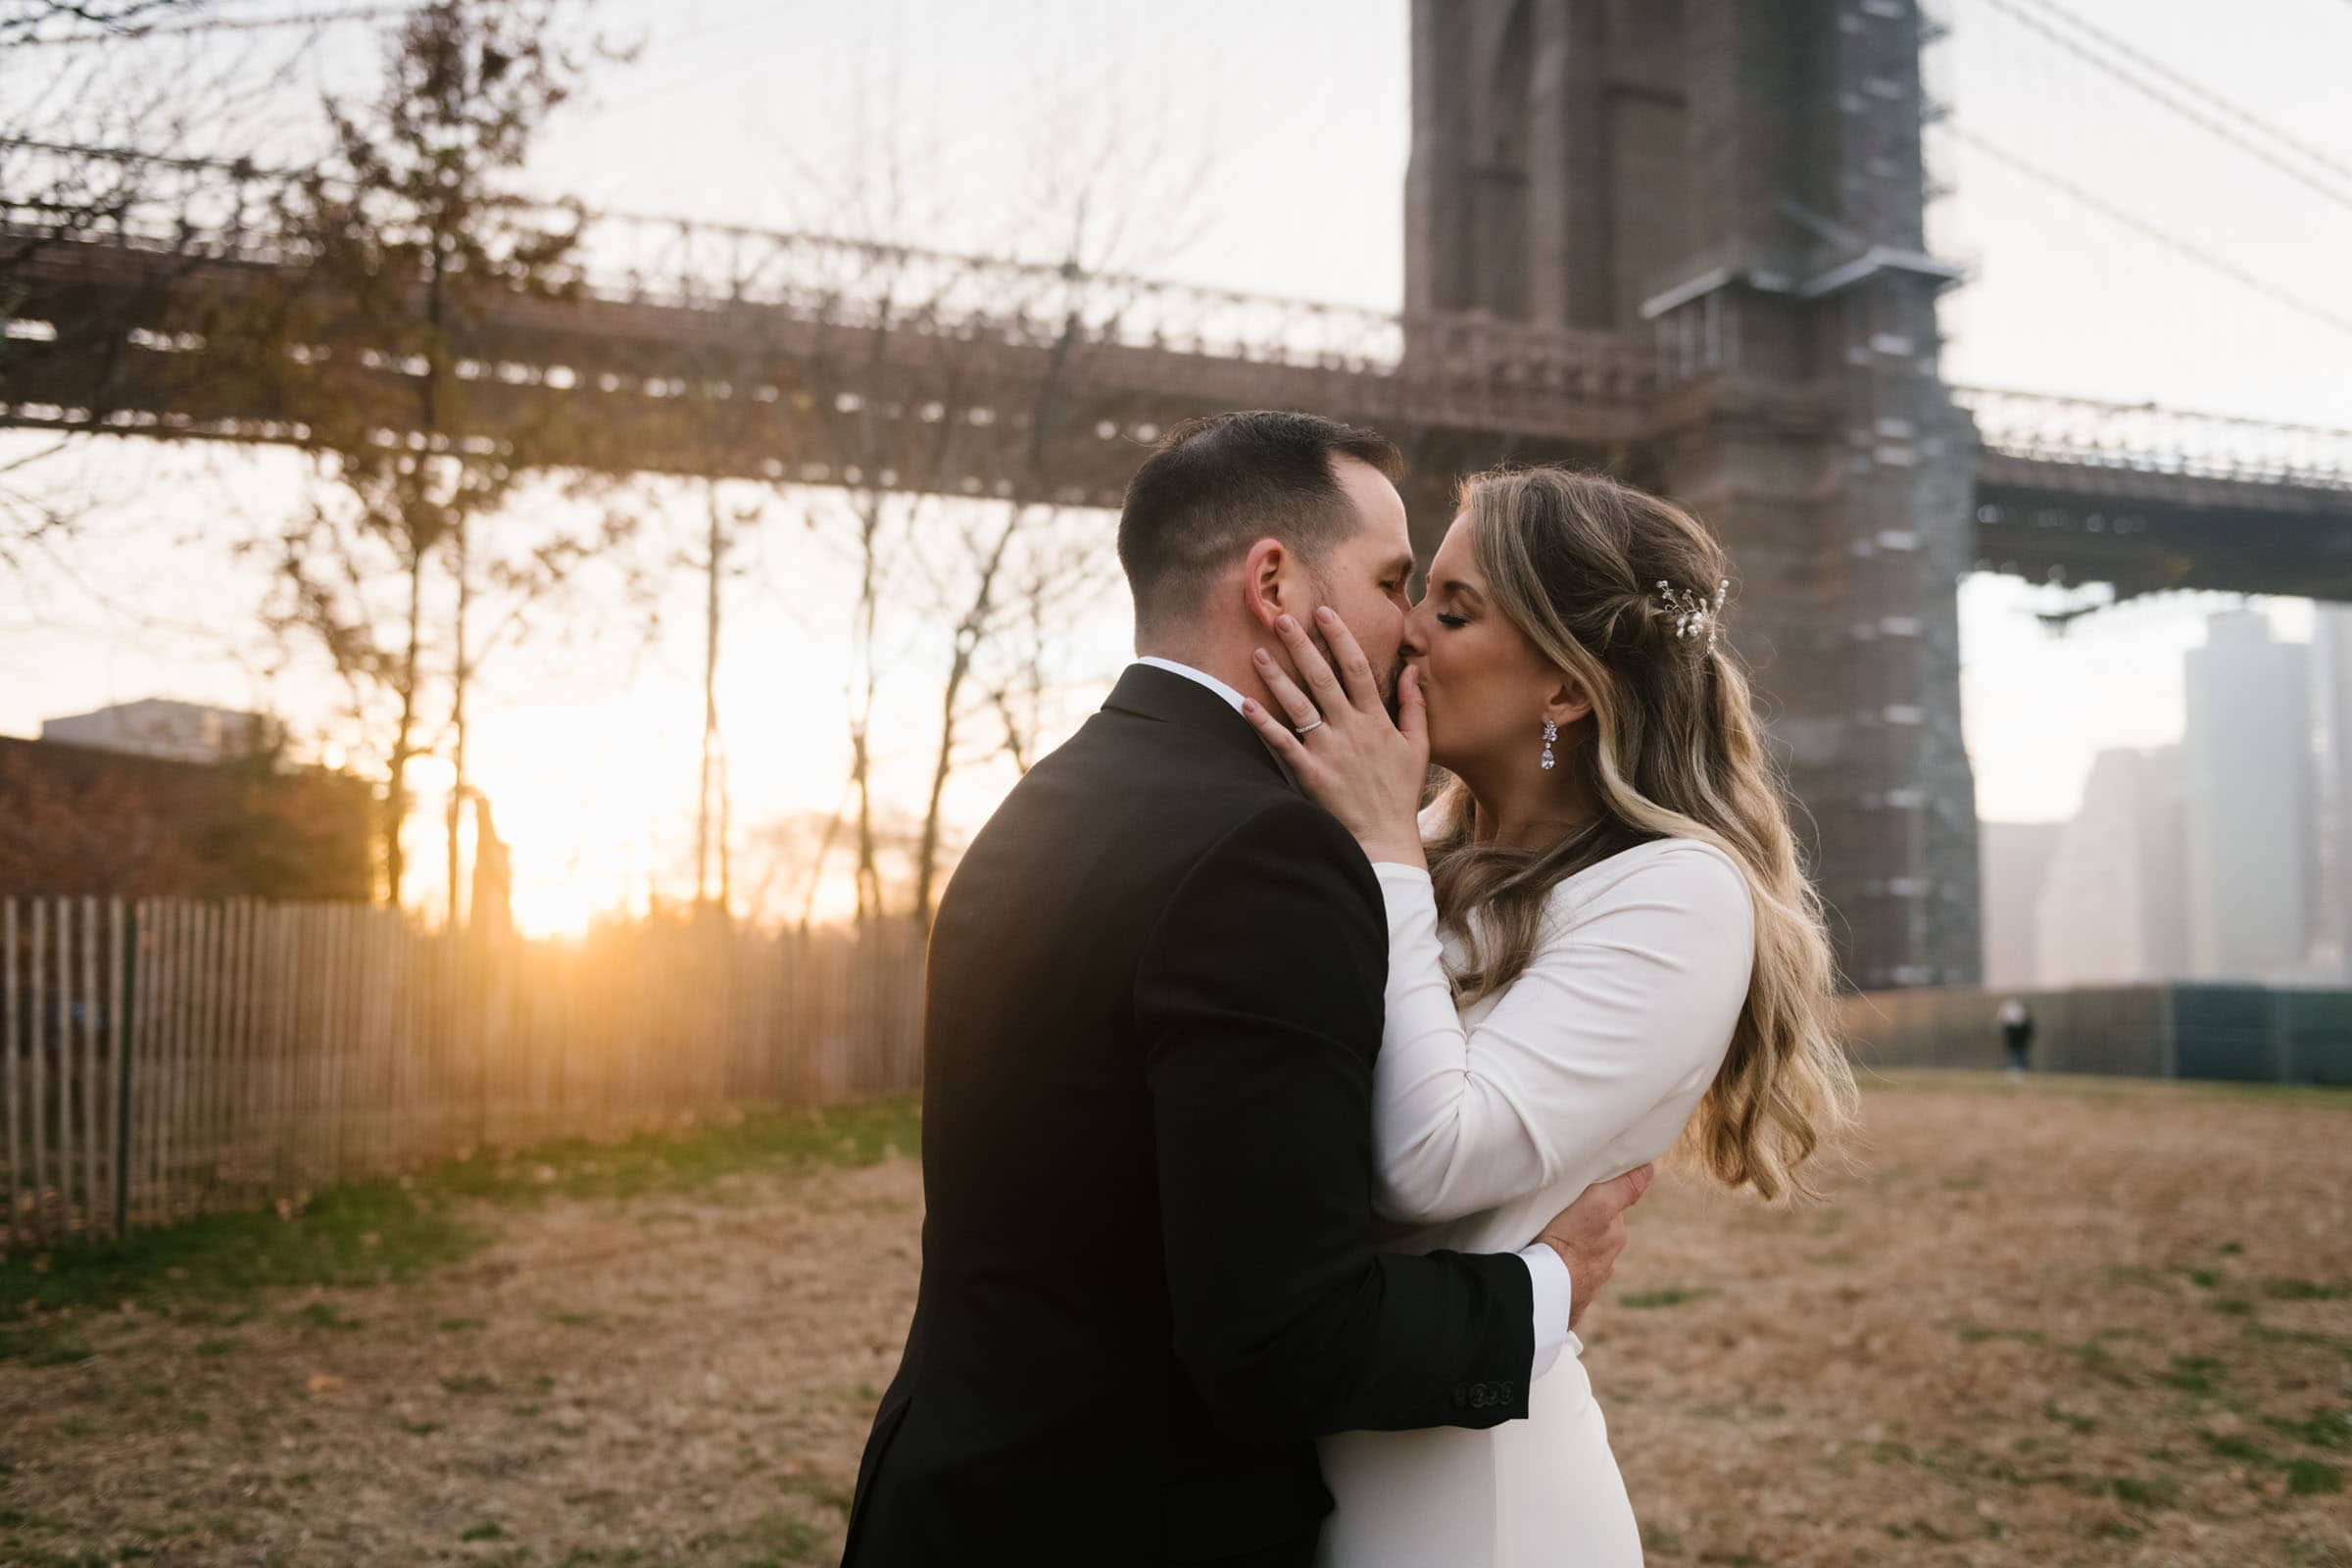 Empire Fulton Ferry Boardwalk wedding at Brooklyn Bridge Park